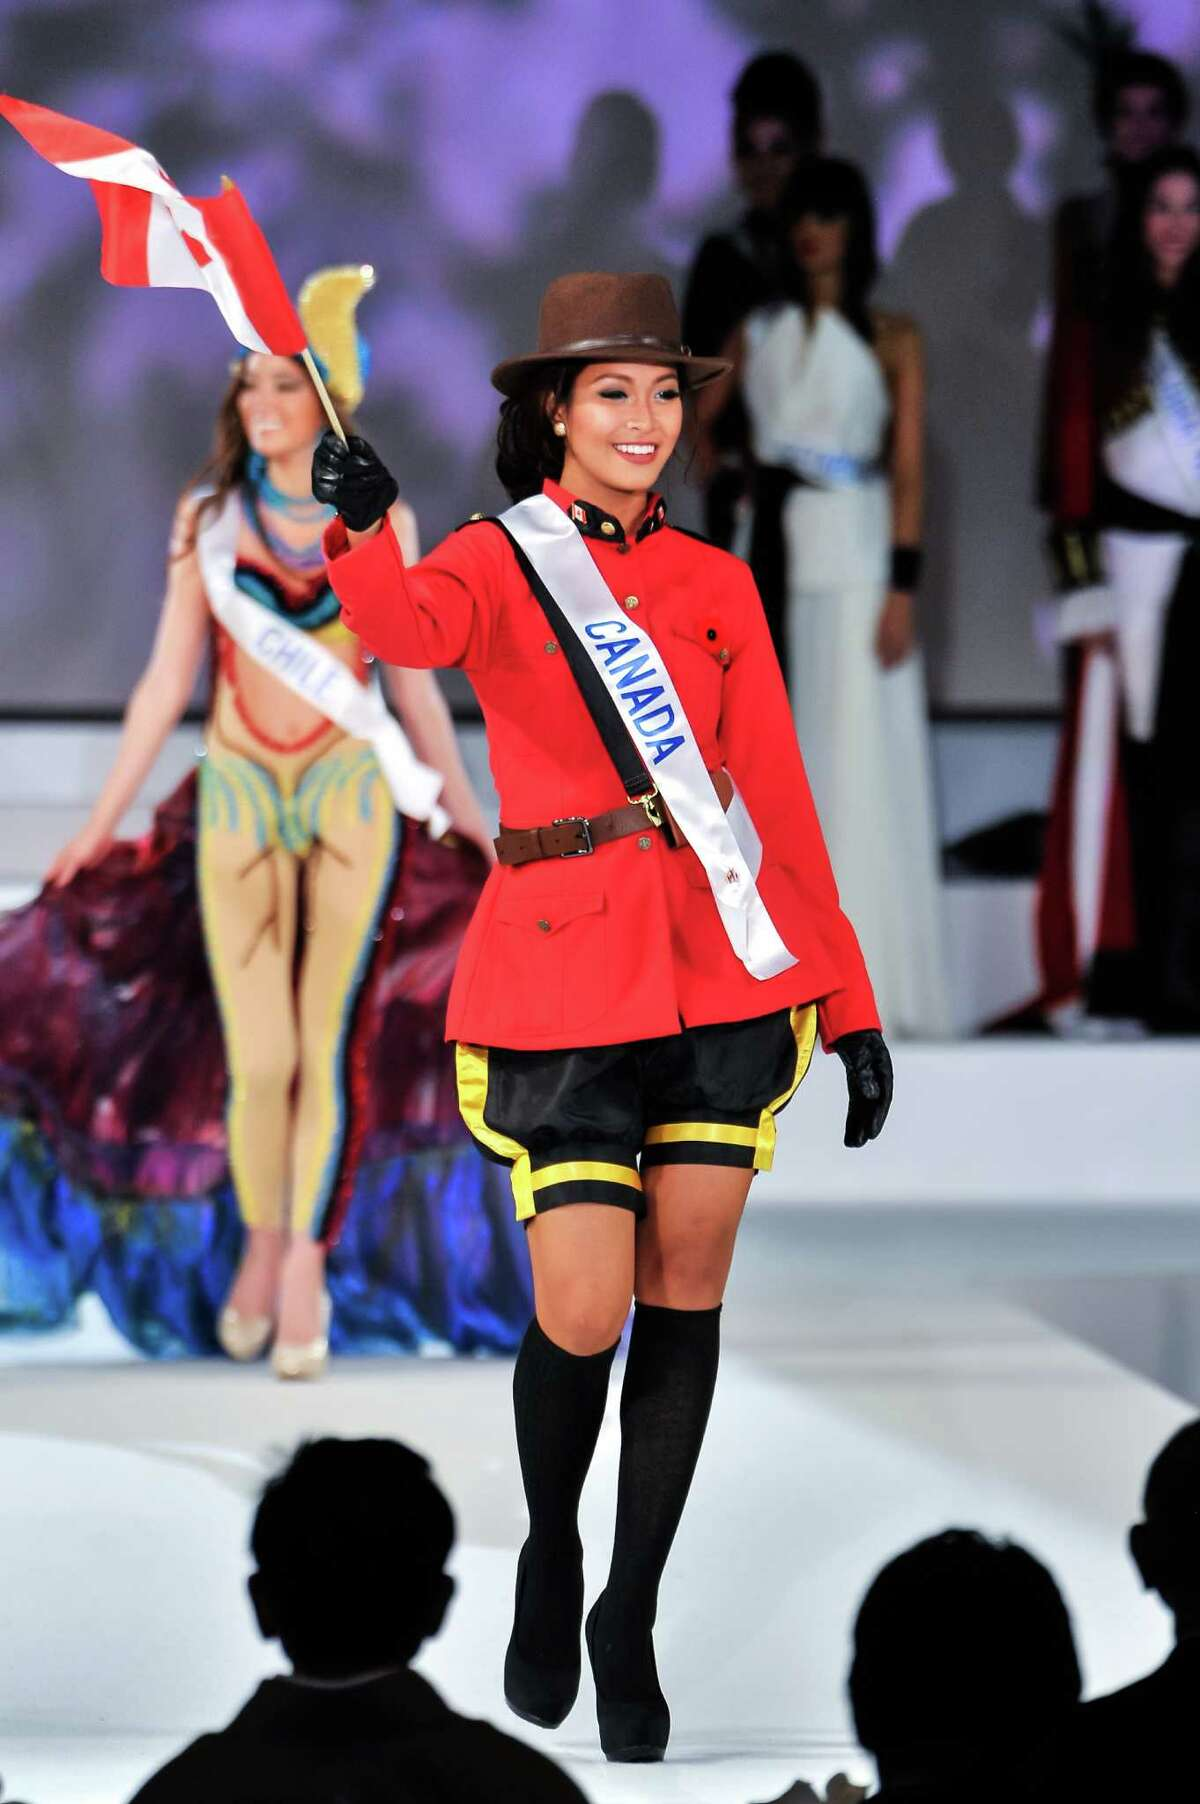 Miss Canada Kesiah Papasin competes during The 54th Miss International Beauty Pageant 2014 at Grand Prince Hotel New Takanawa on November 11, 2014 in Tokyo, Japan.